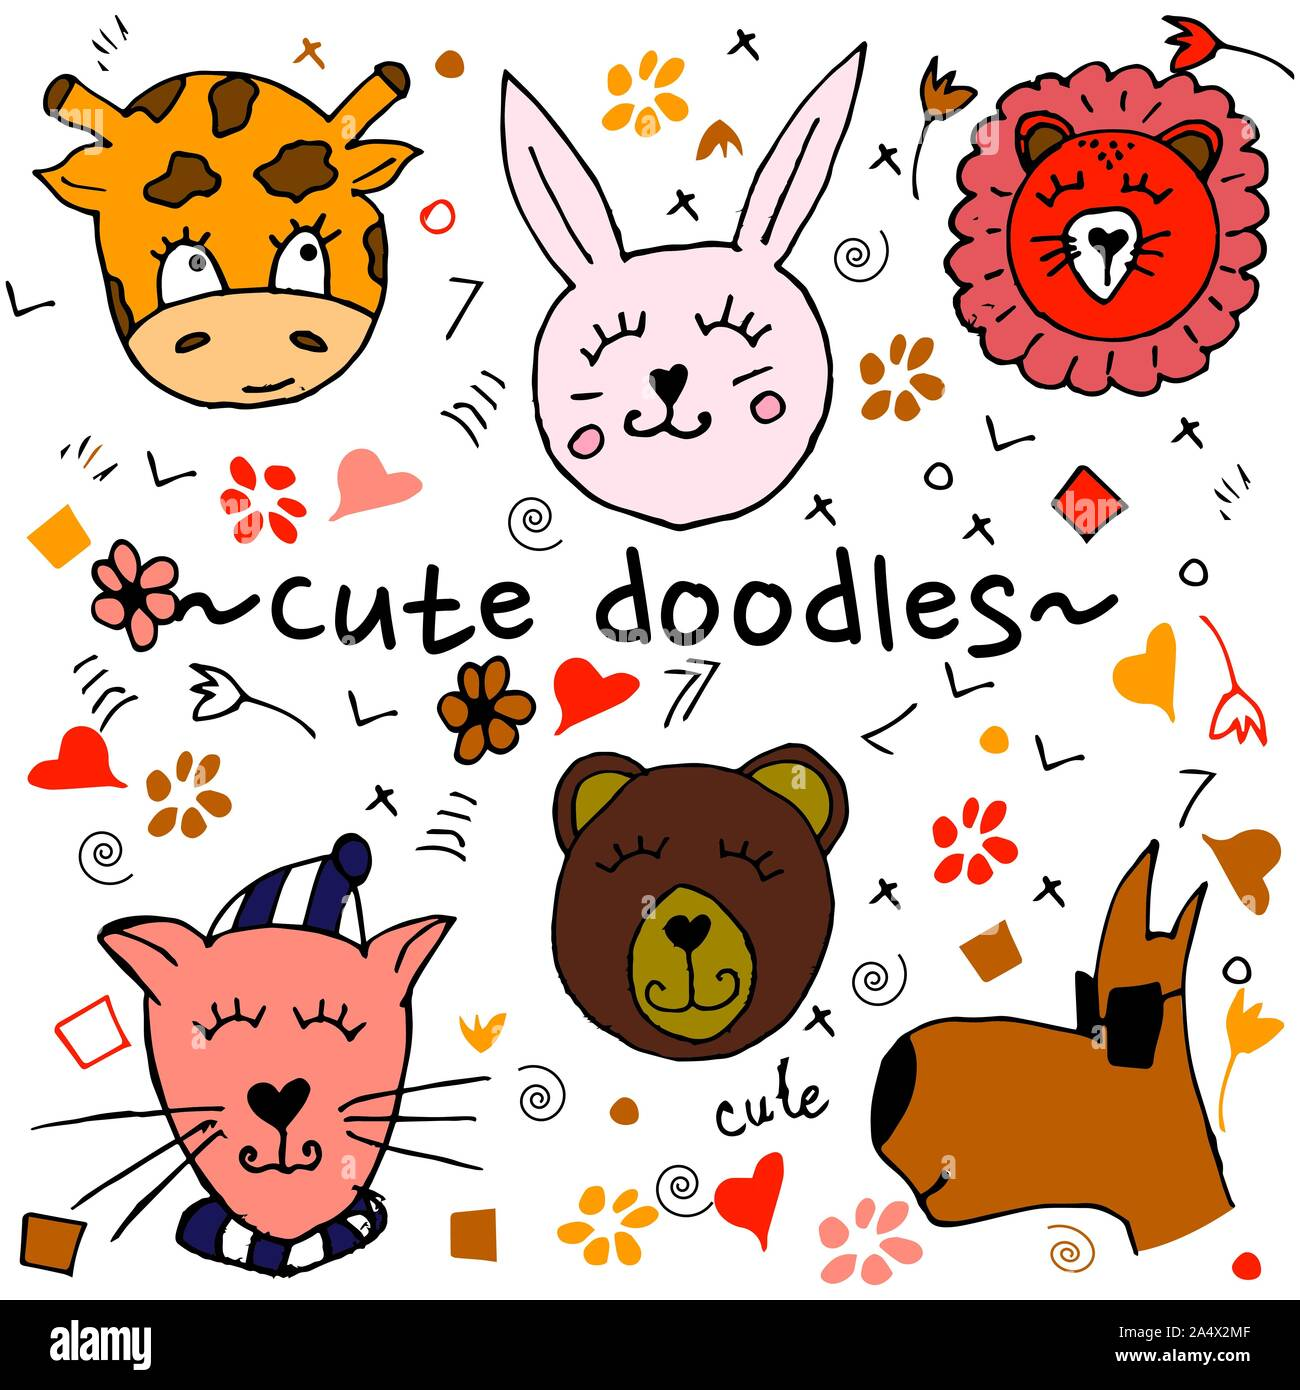 Colorful animal friends collection including dog, cat, giraffe, bear, lion, rabbit.Cute hand drawn doodles.Good for posters, stickers, cards, alphabet Stock Vector